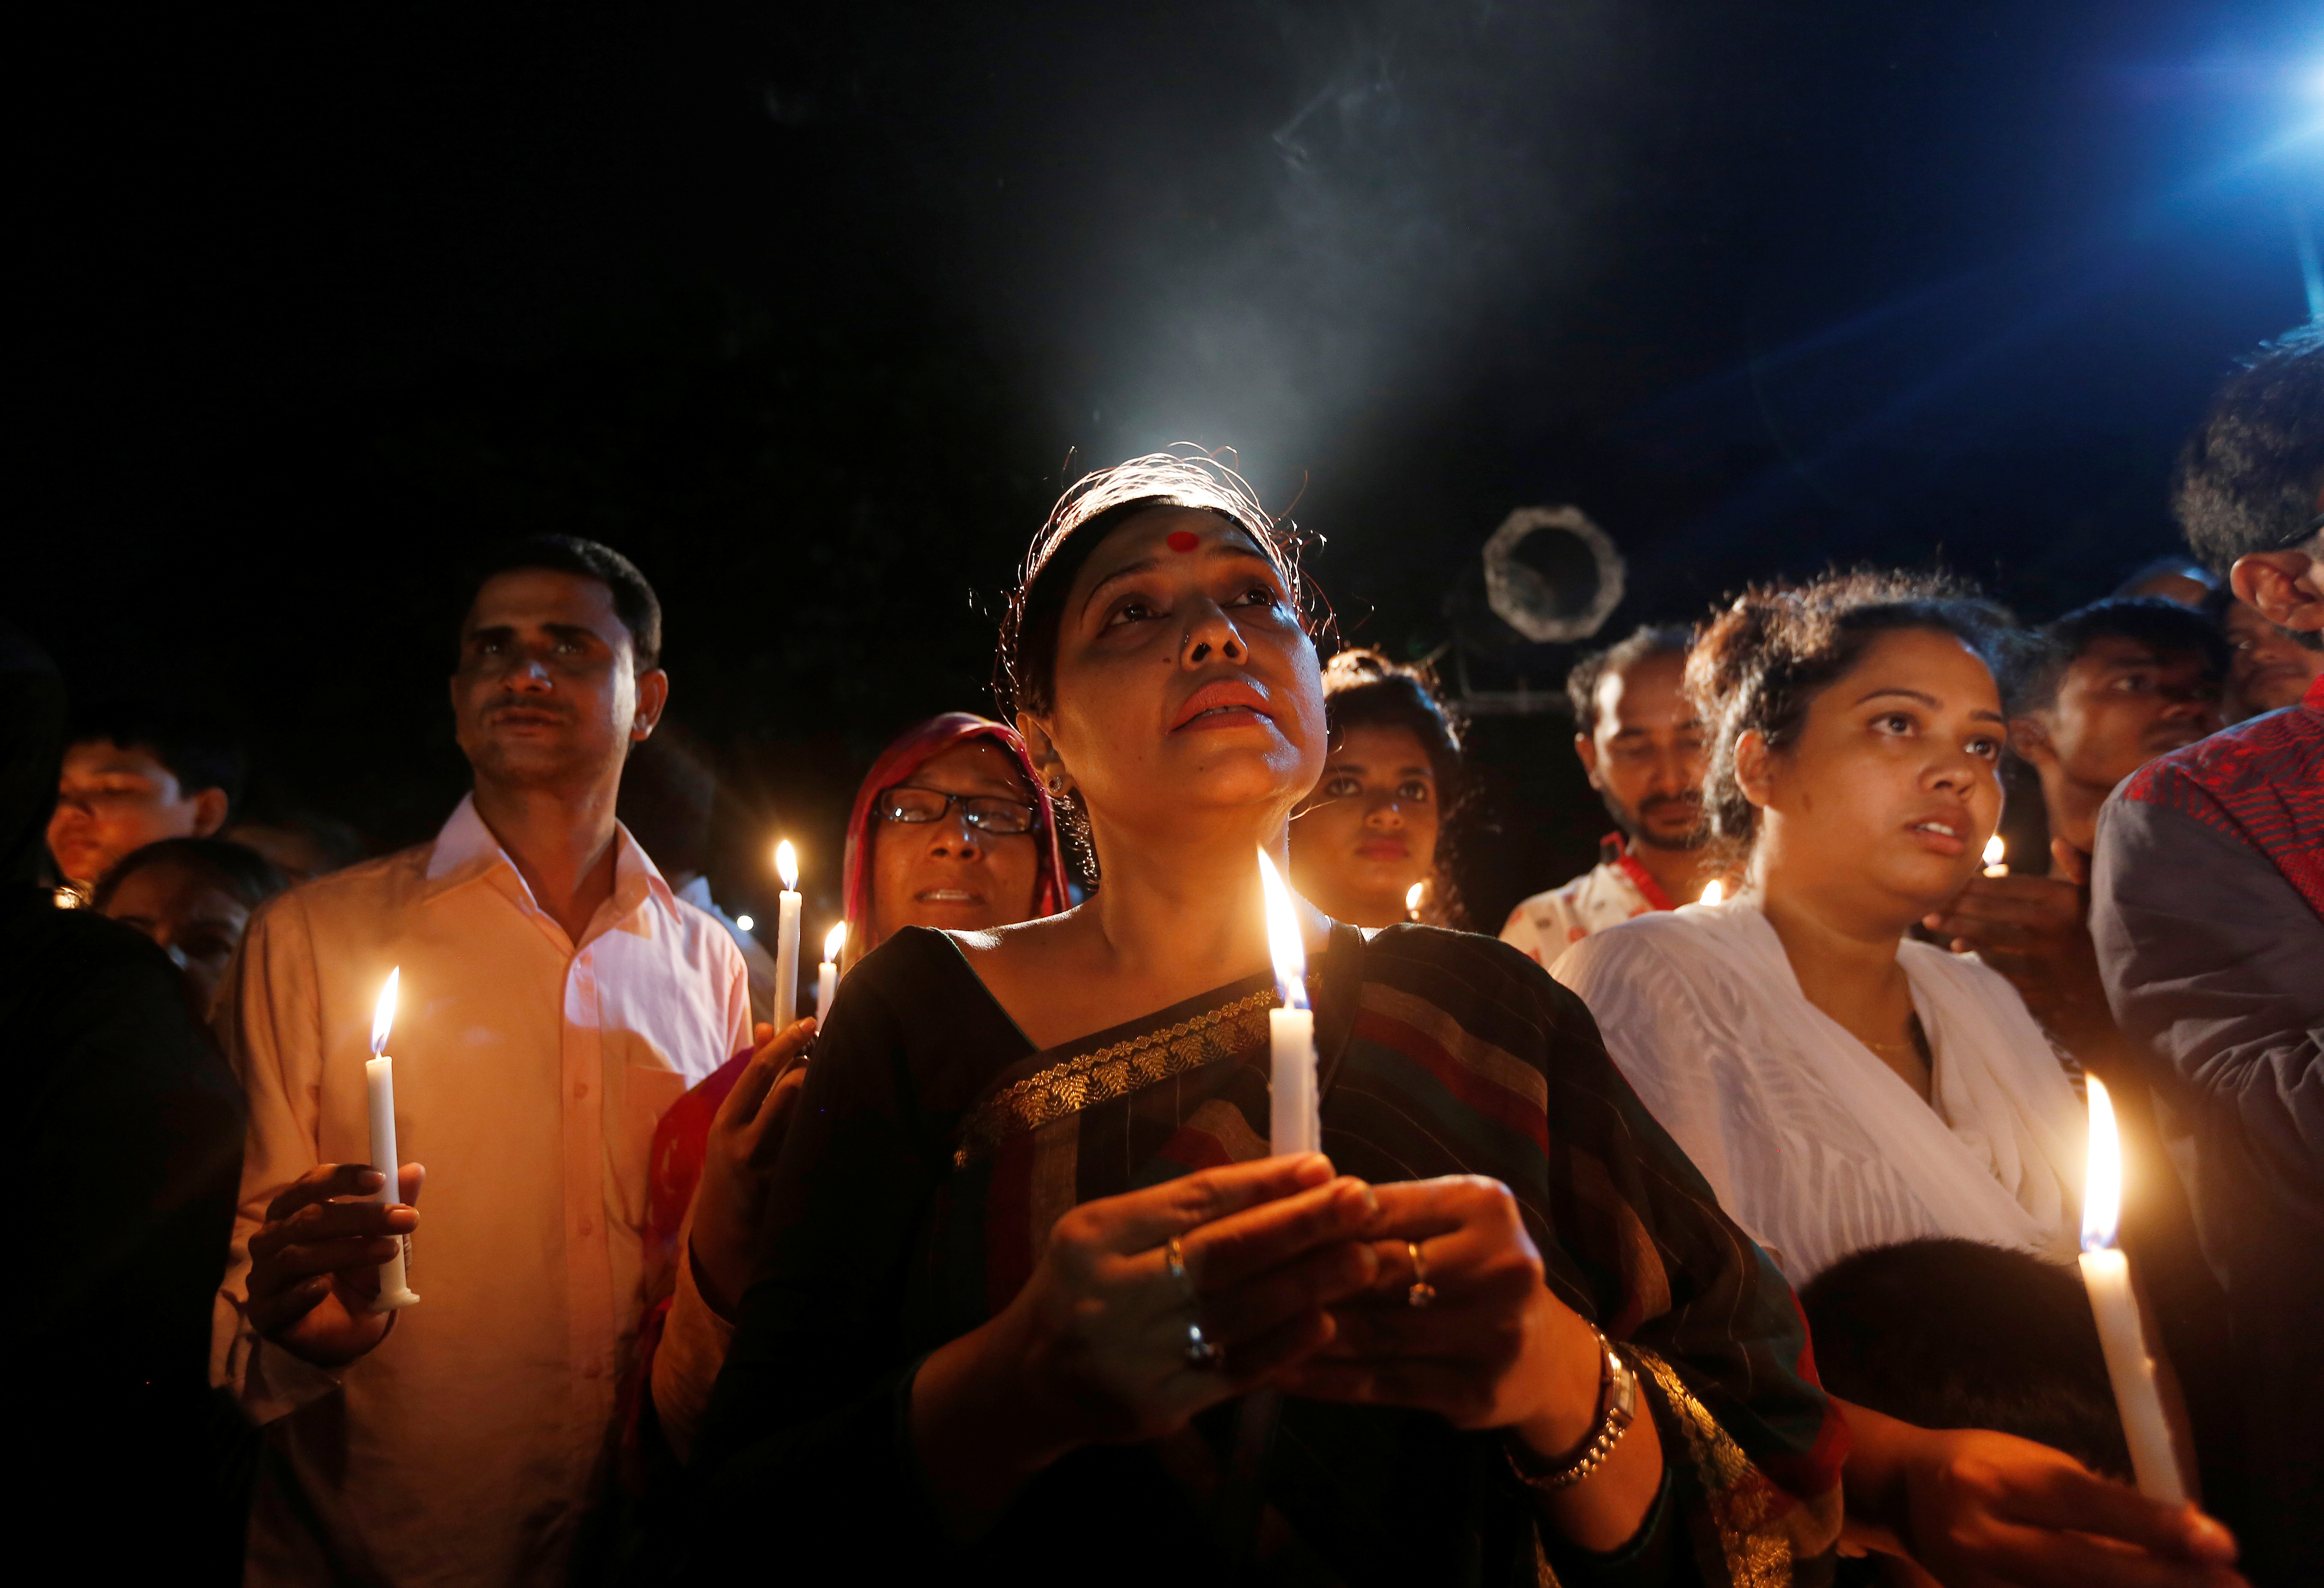 People attend a candlelight vigil for the victims of the attack on the Holey Artisan Bakery restaurant in Dhaka, Bangladesh, on July 3, 2016